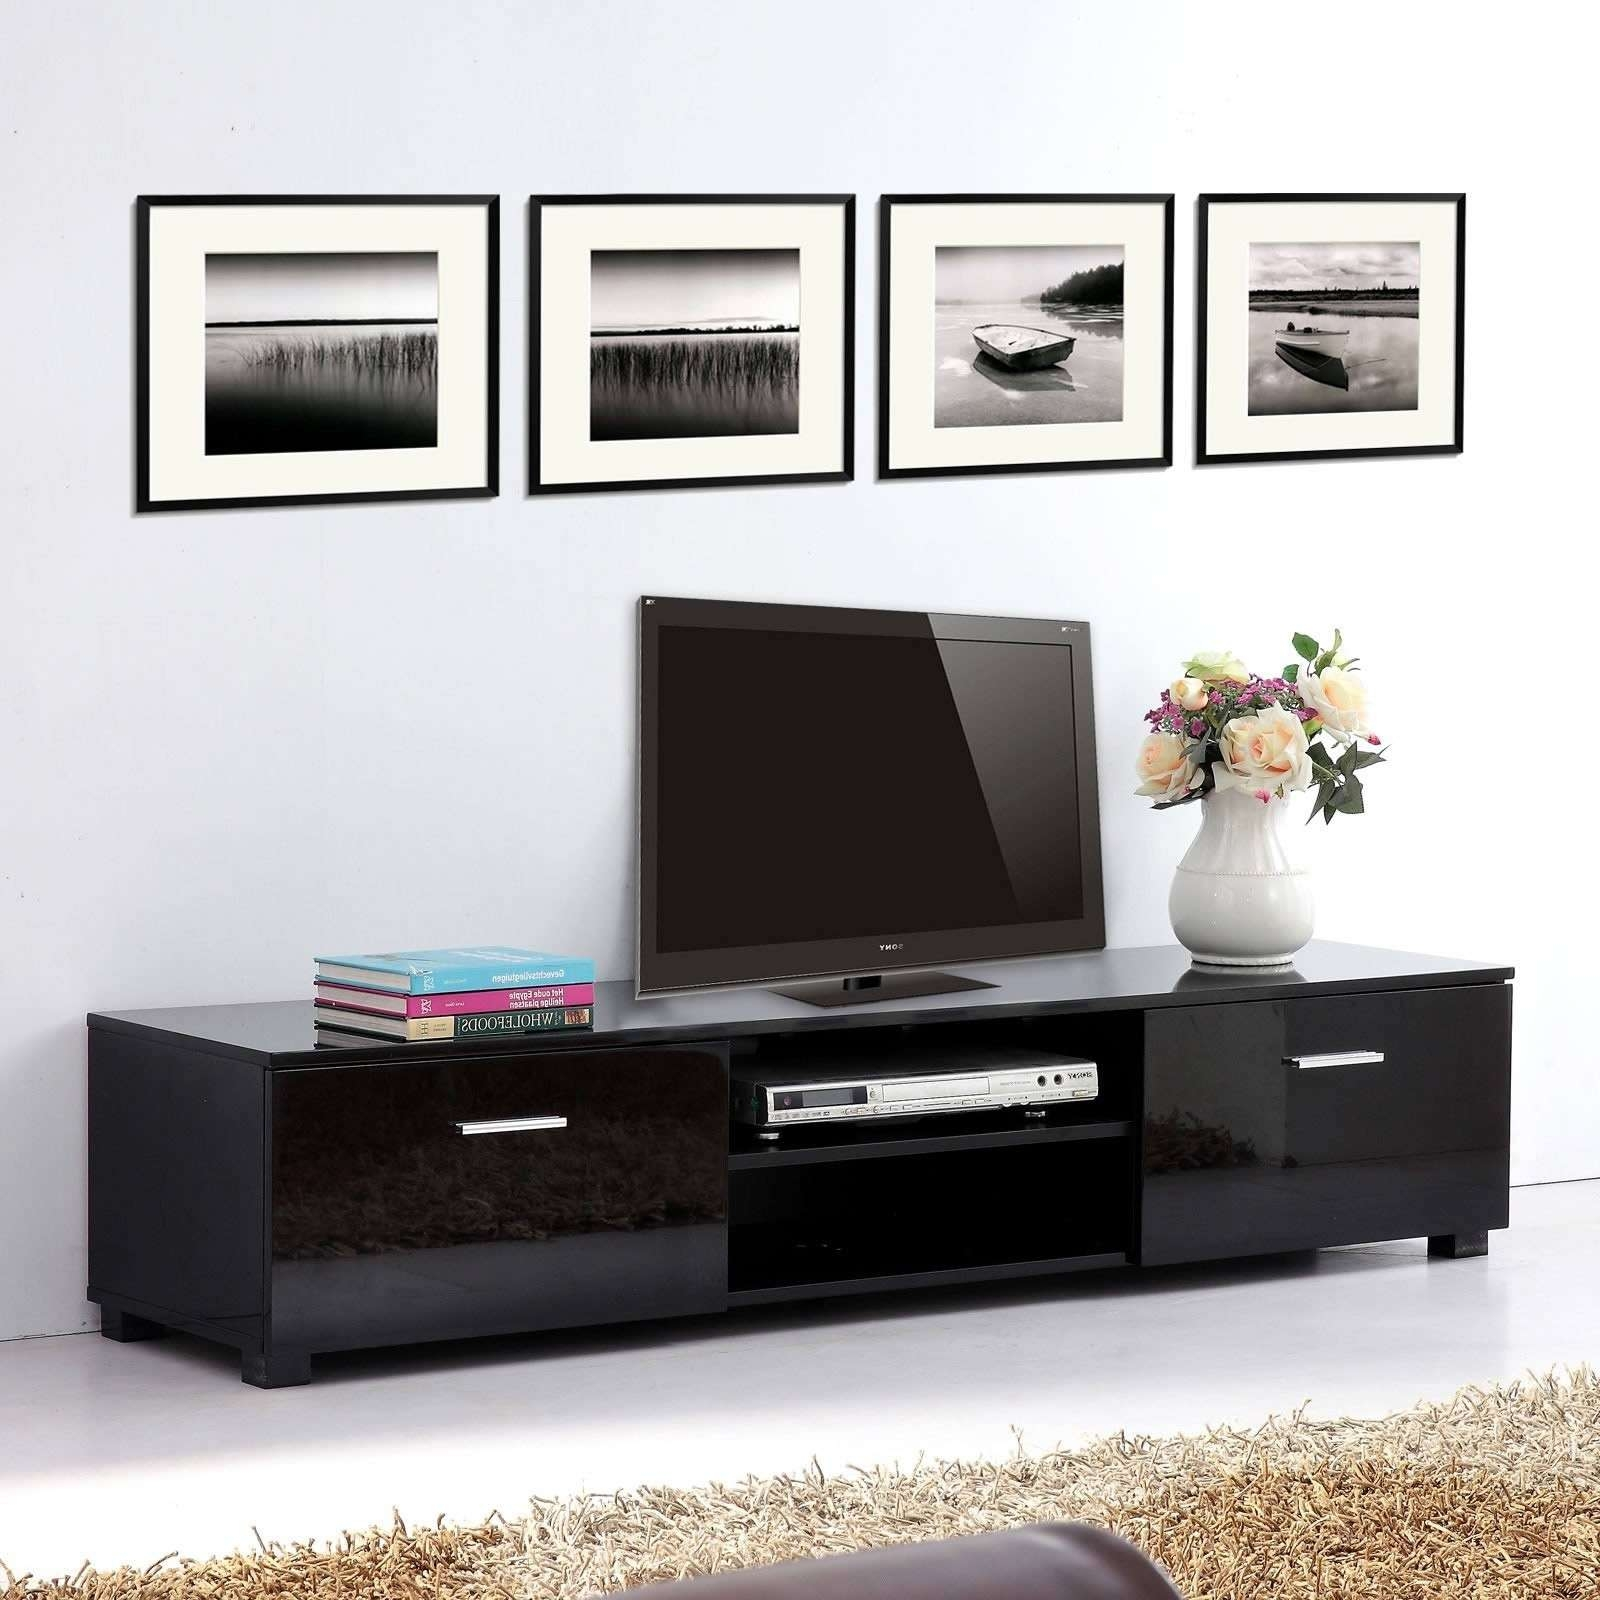 Tv Stands Adjustable Height Tall Stand With Mount Thin Wood Regarding Long Black Tv Stands (View 15 of 15)